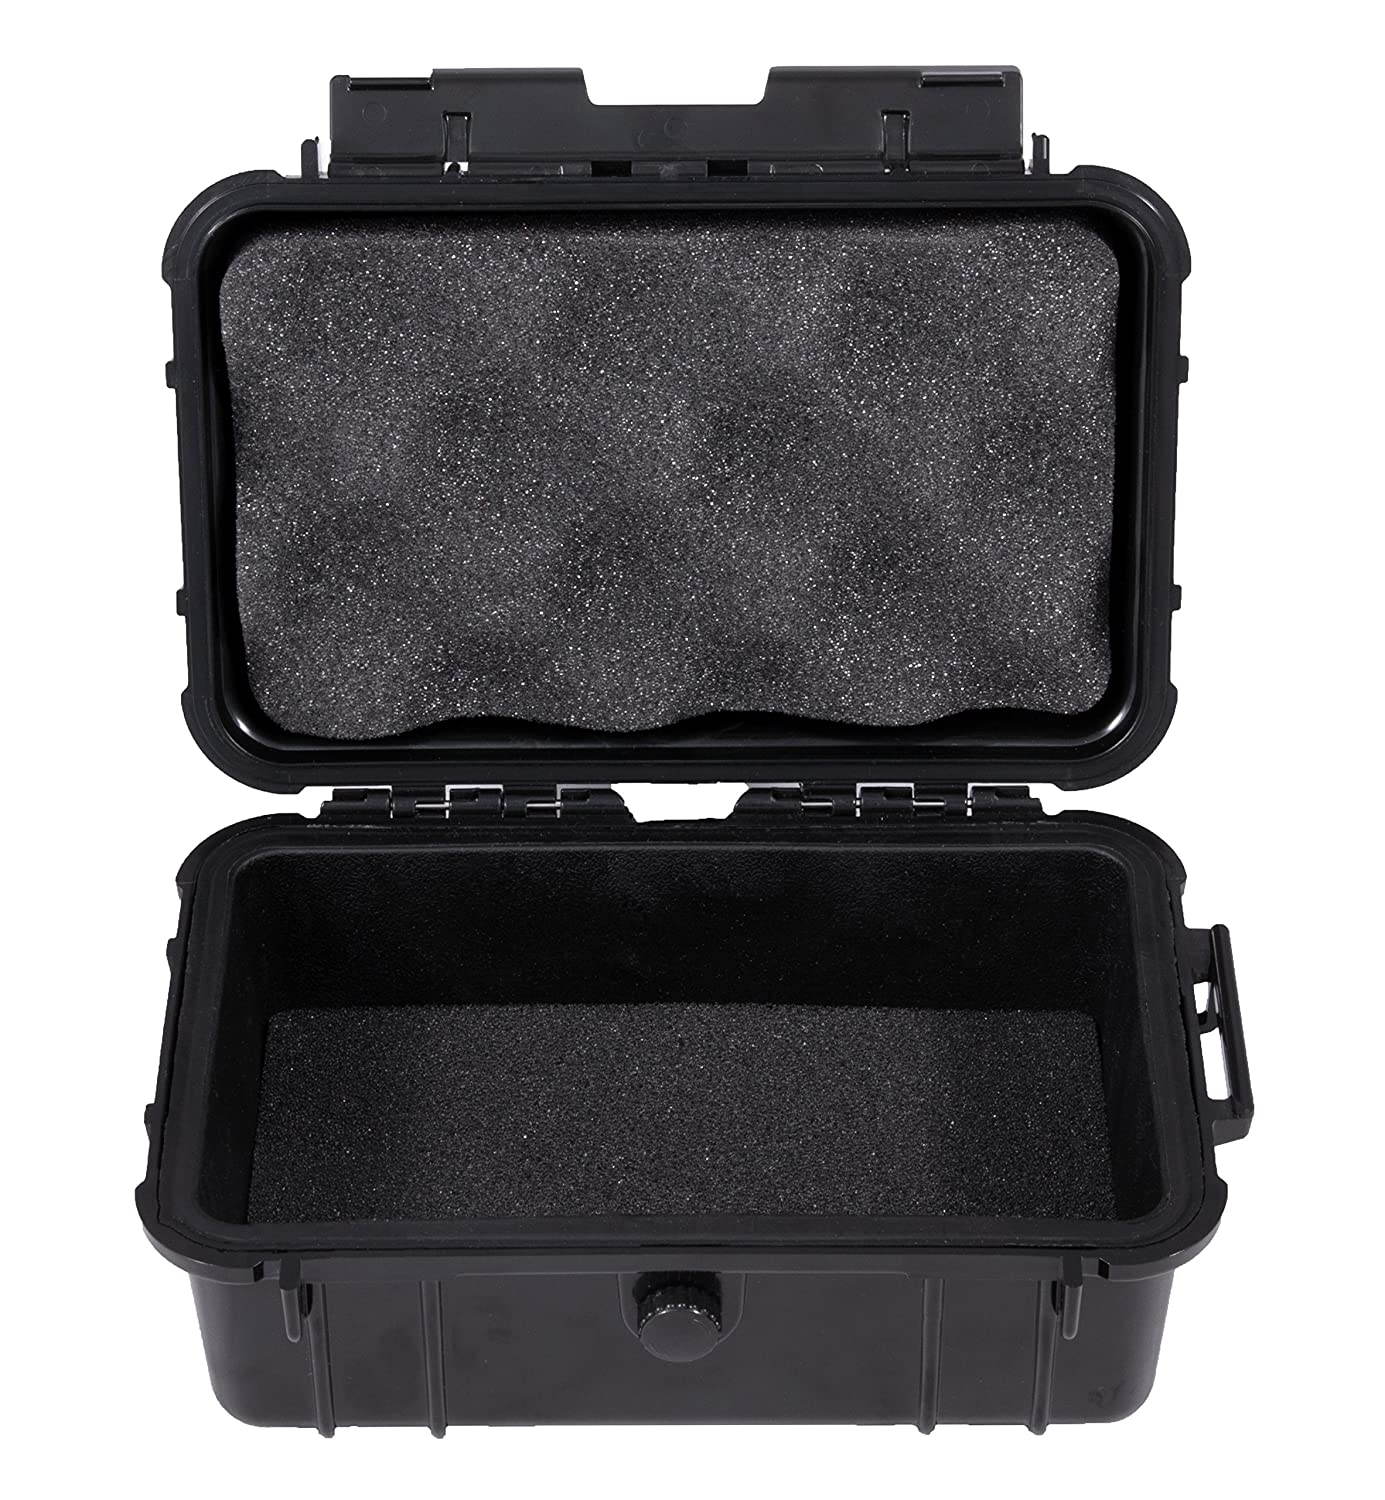 PO-12 and More PO-24 CASEMATIX Waterproof Case Fits up to THREE Teenage Engineering Pocket Operators and Small Cables//Connectors Including PO-32 Tonic PO-16 PO-14 PO-28 PO-20